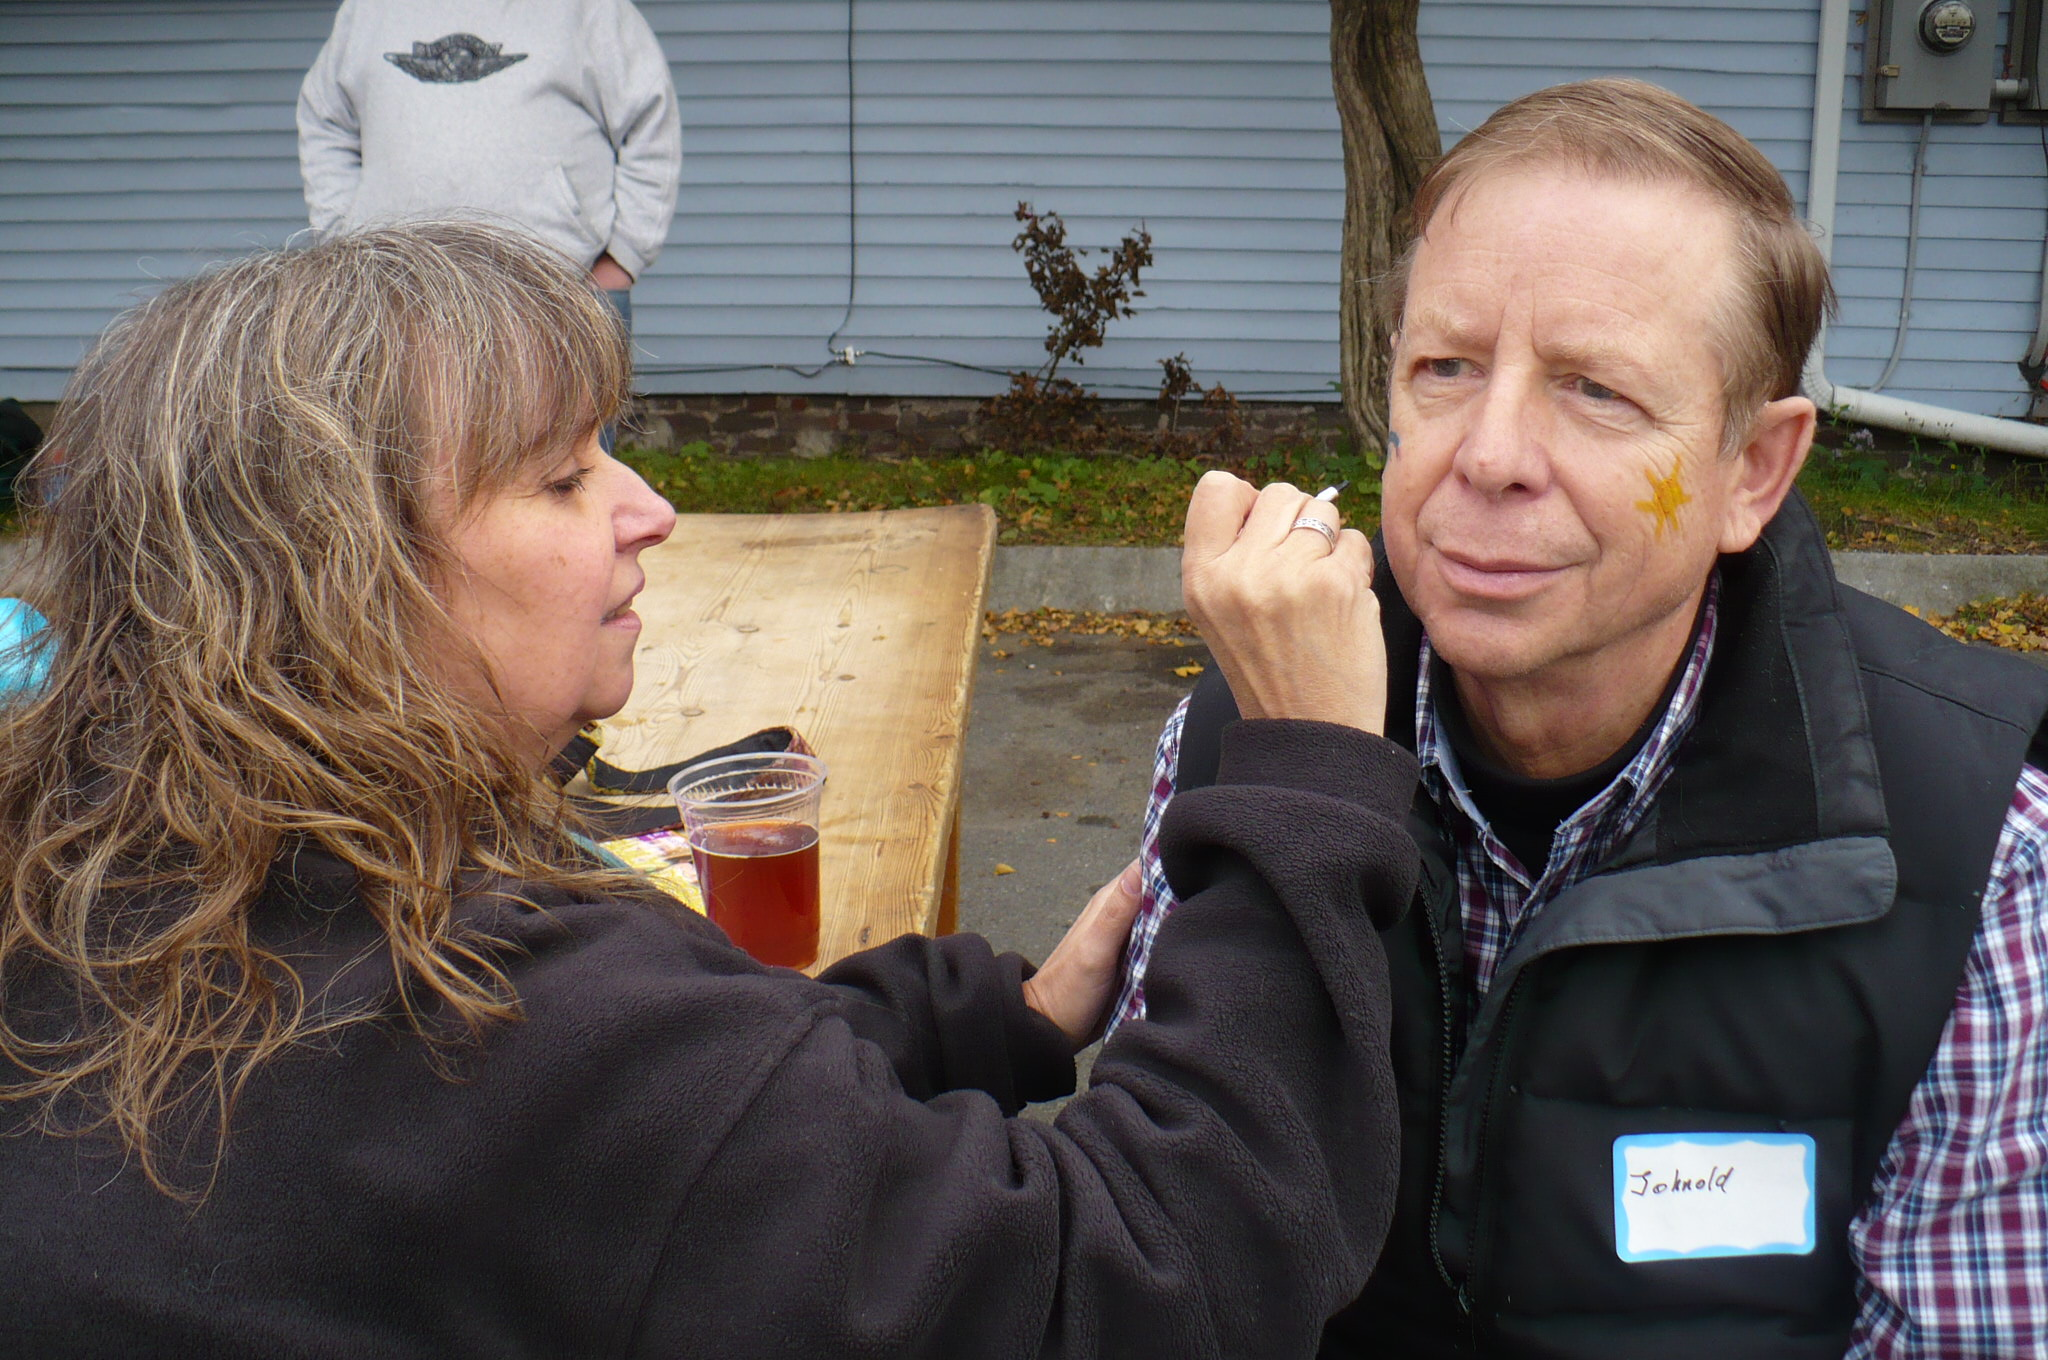 John Hanold getting his face painted